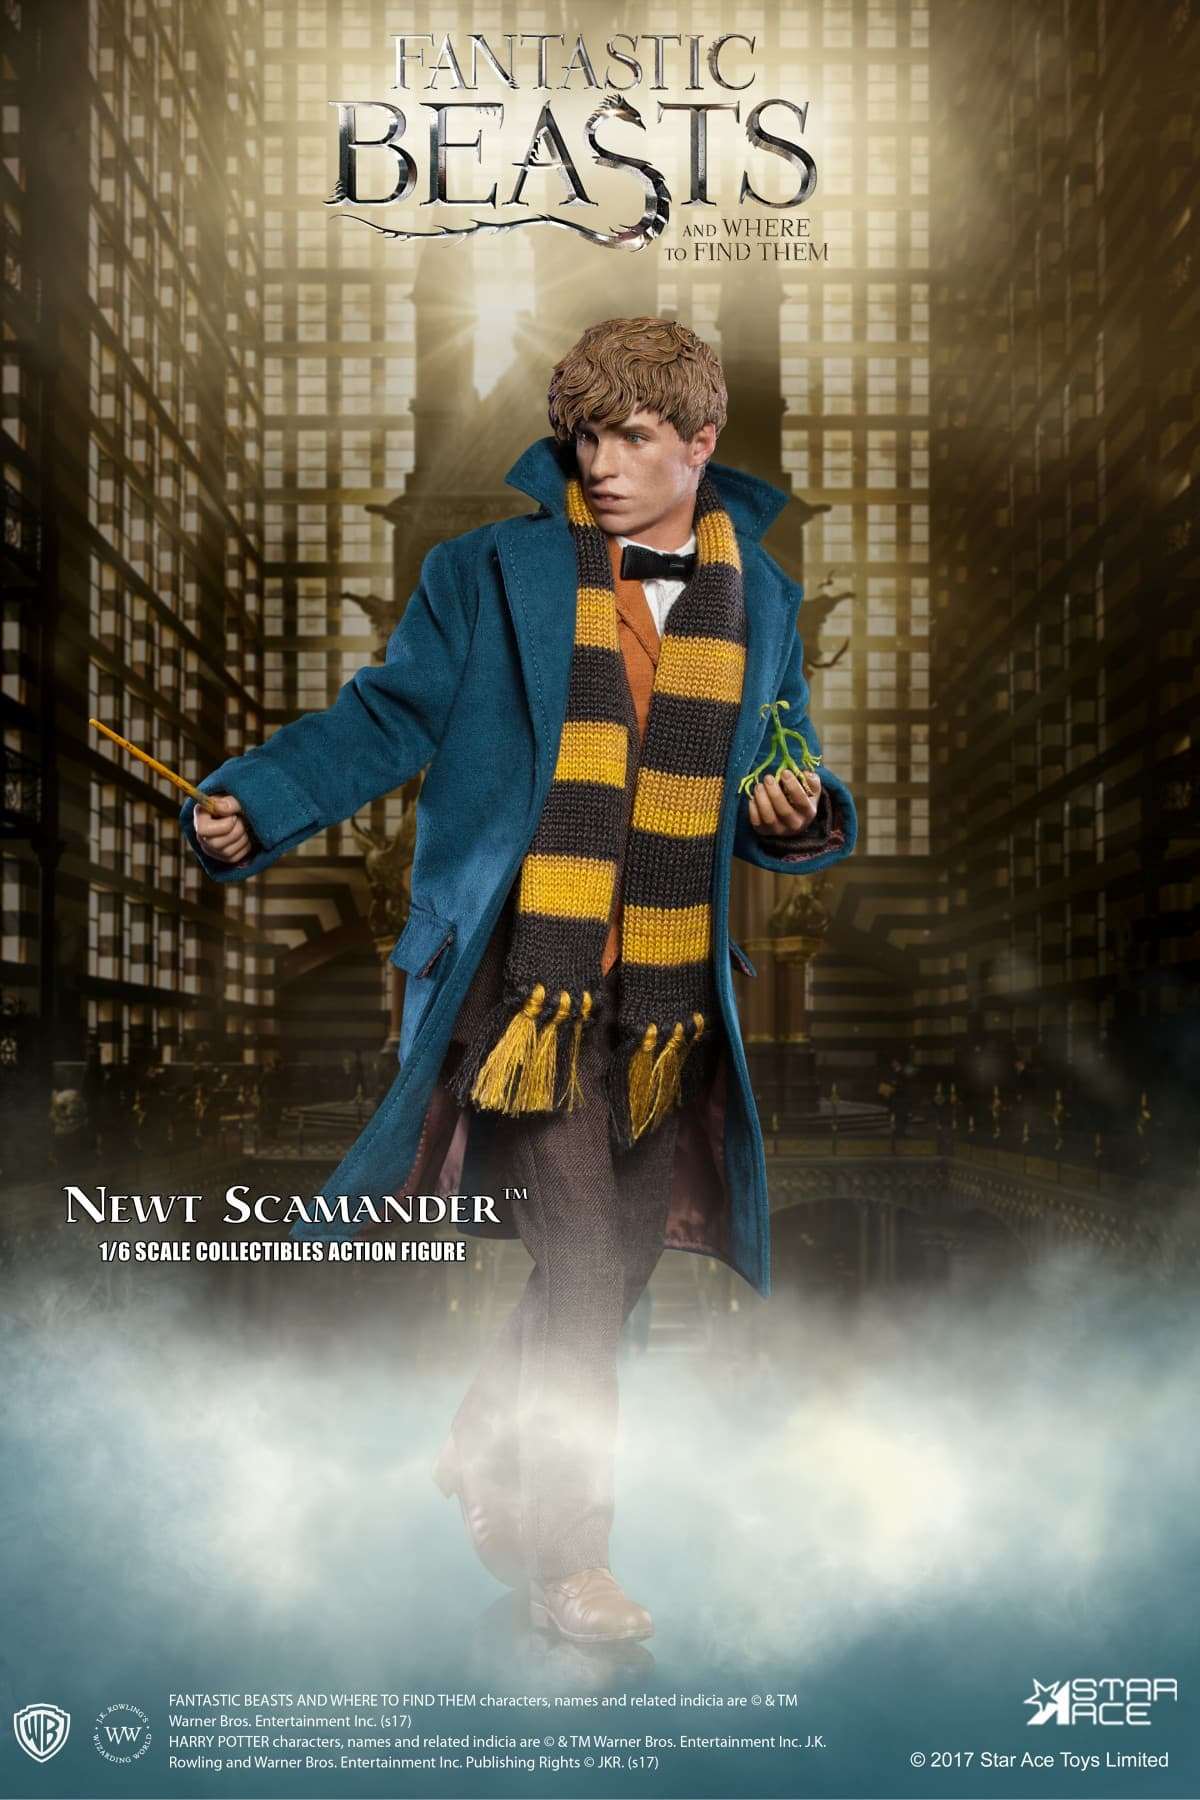 NEWT SCAMANDER FIGURA 30 CM 1/8 COL. ACTION FIGURE FANTASTIC BEASTS AND WHERE TO FIND THEM